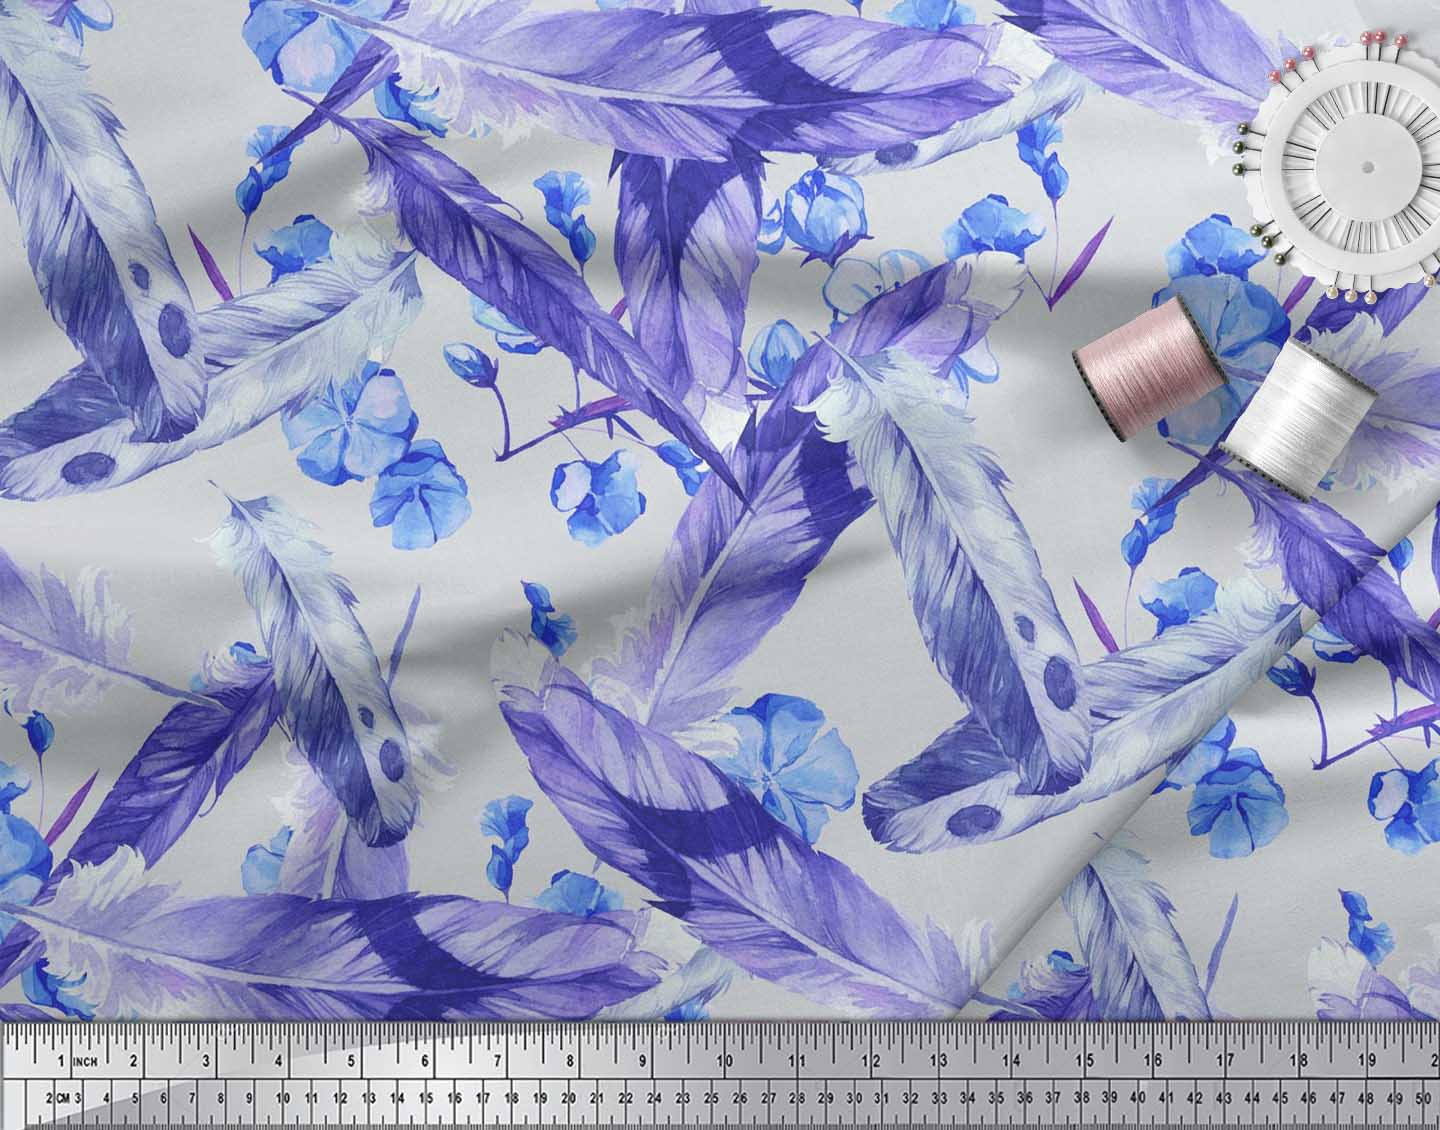 Soimoi-Cotton-Poplin-Fabric-Flowers-amp-Feather-Printed-Craft-Fabric-Kxl thumbnail 4